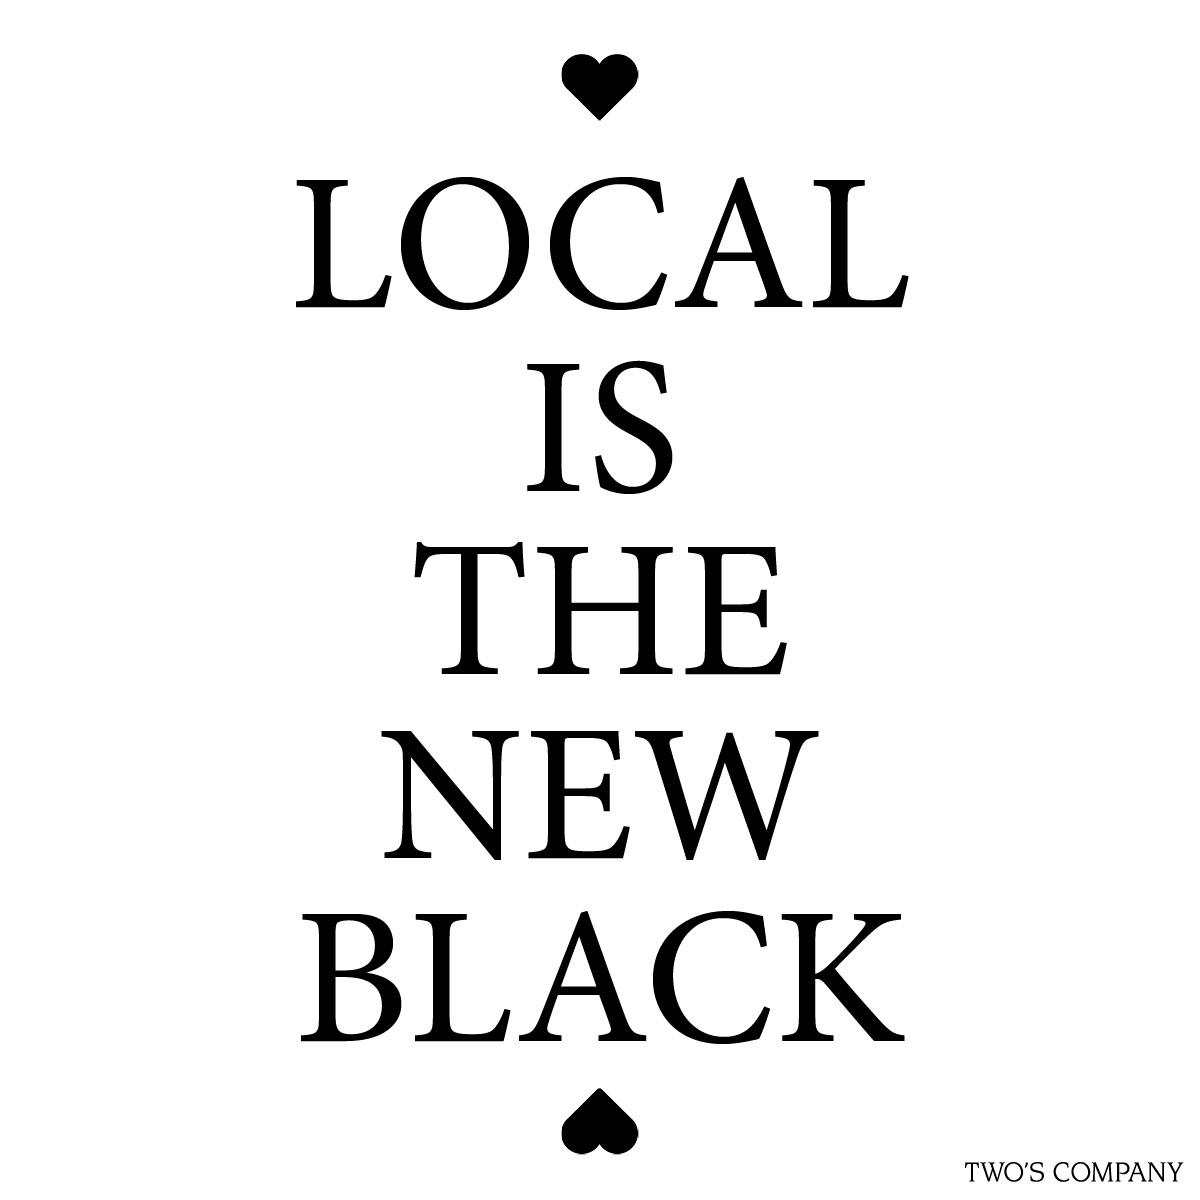 Local is the new black